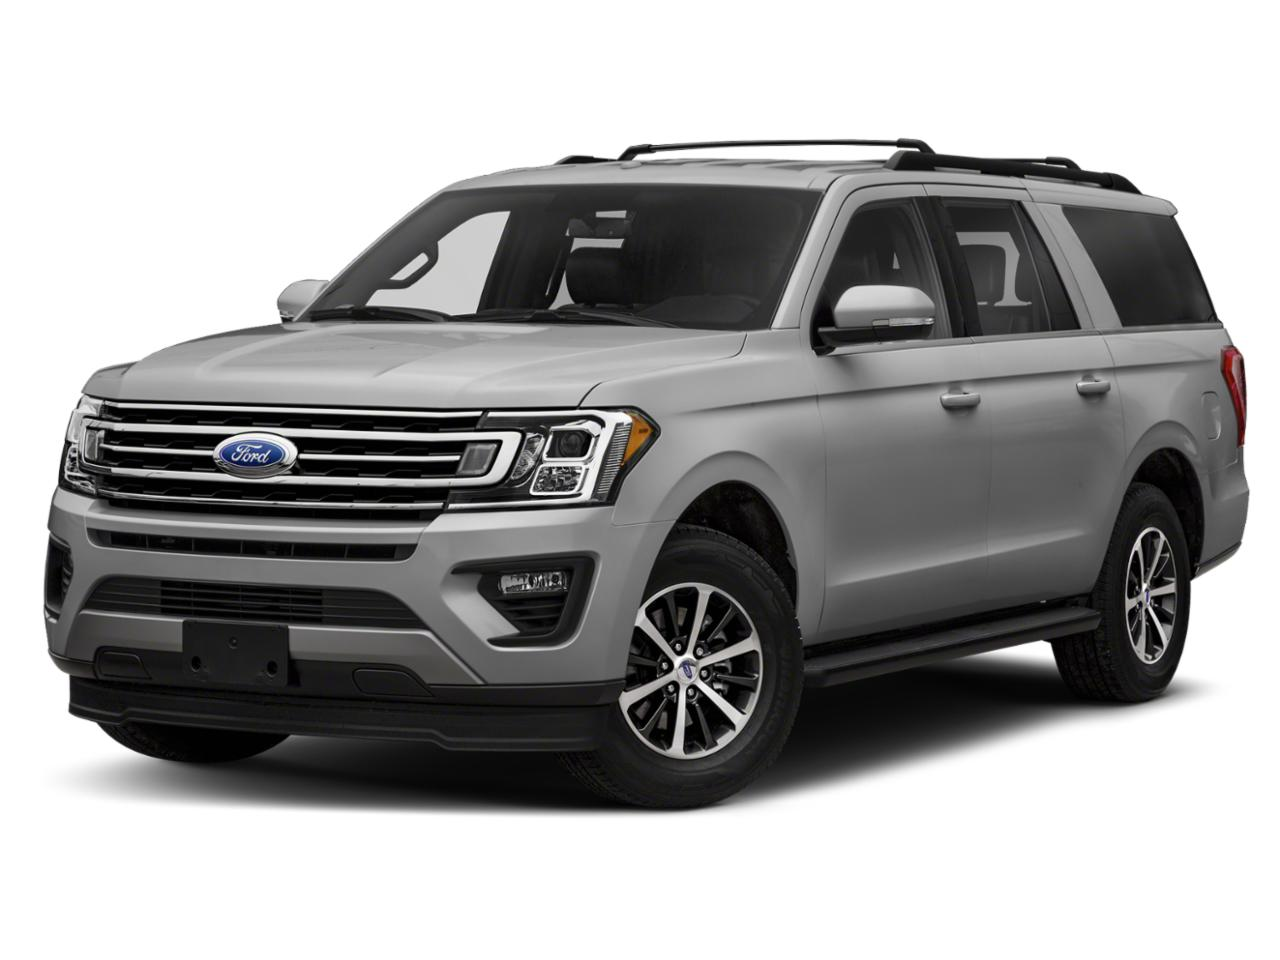 2018 Ford Expedition Max Vehicle Photo in HOOVER, AL 35216